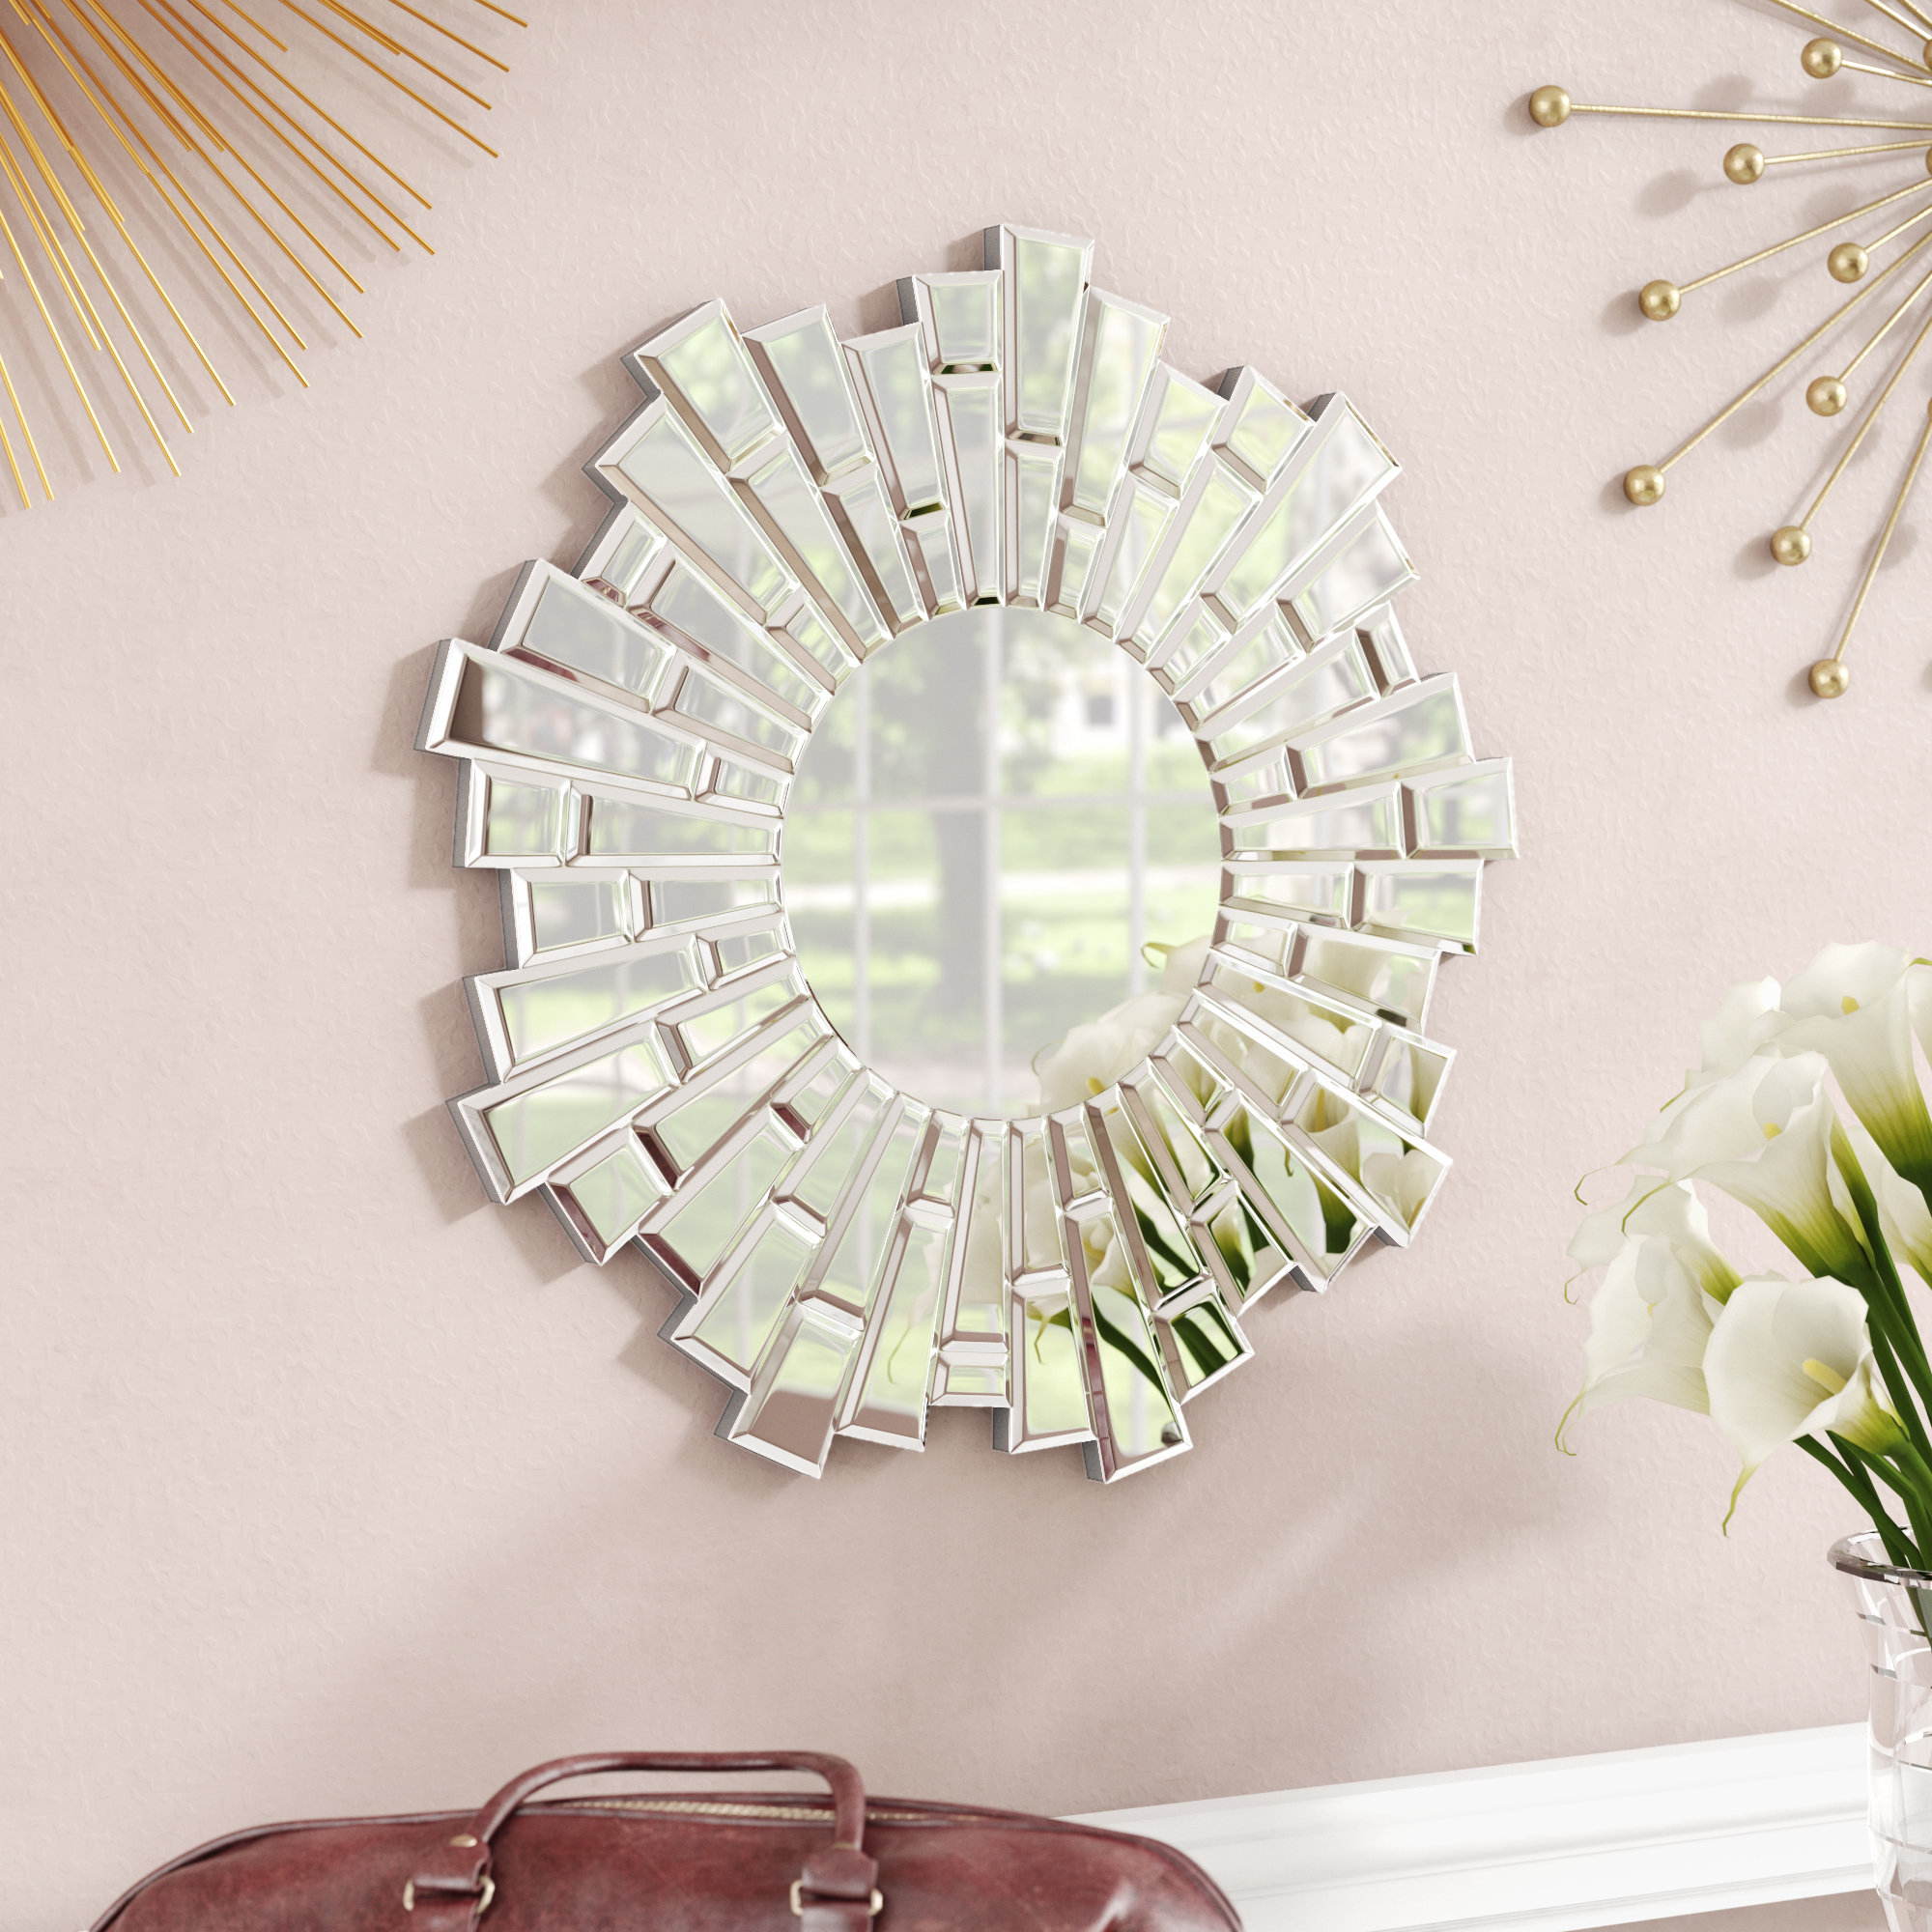 Sunburst Wall Mirrors You'll Love In 2019 | Wayfair With Regard To Bruckdale Decorative Flower Accent Mirrors (View 9 of 20)